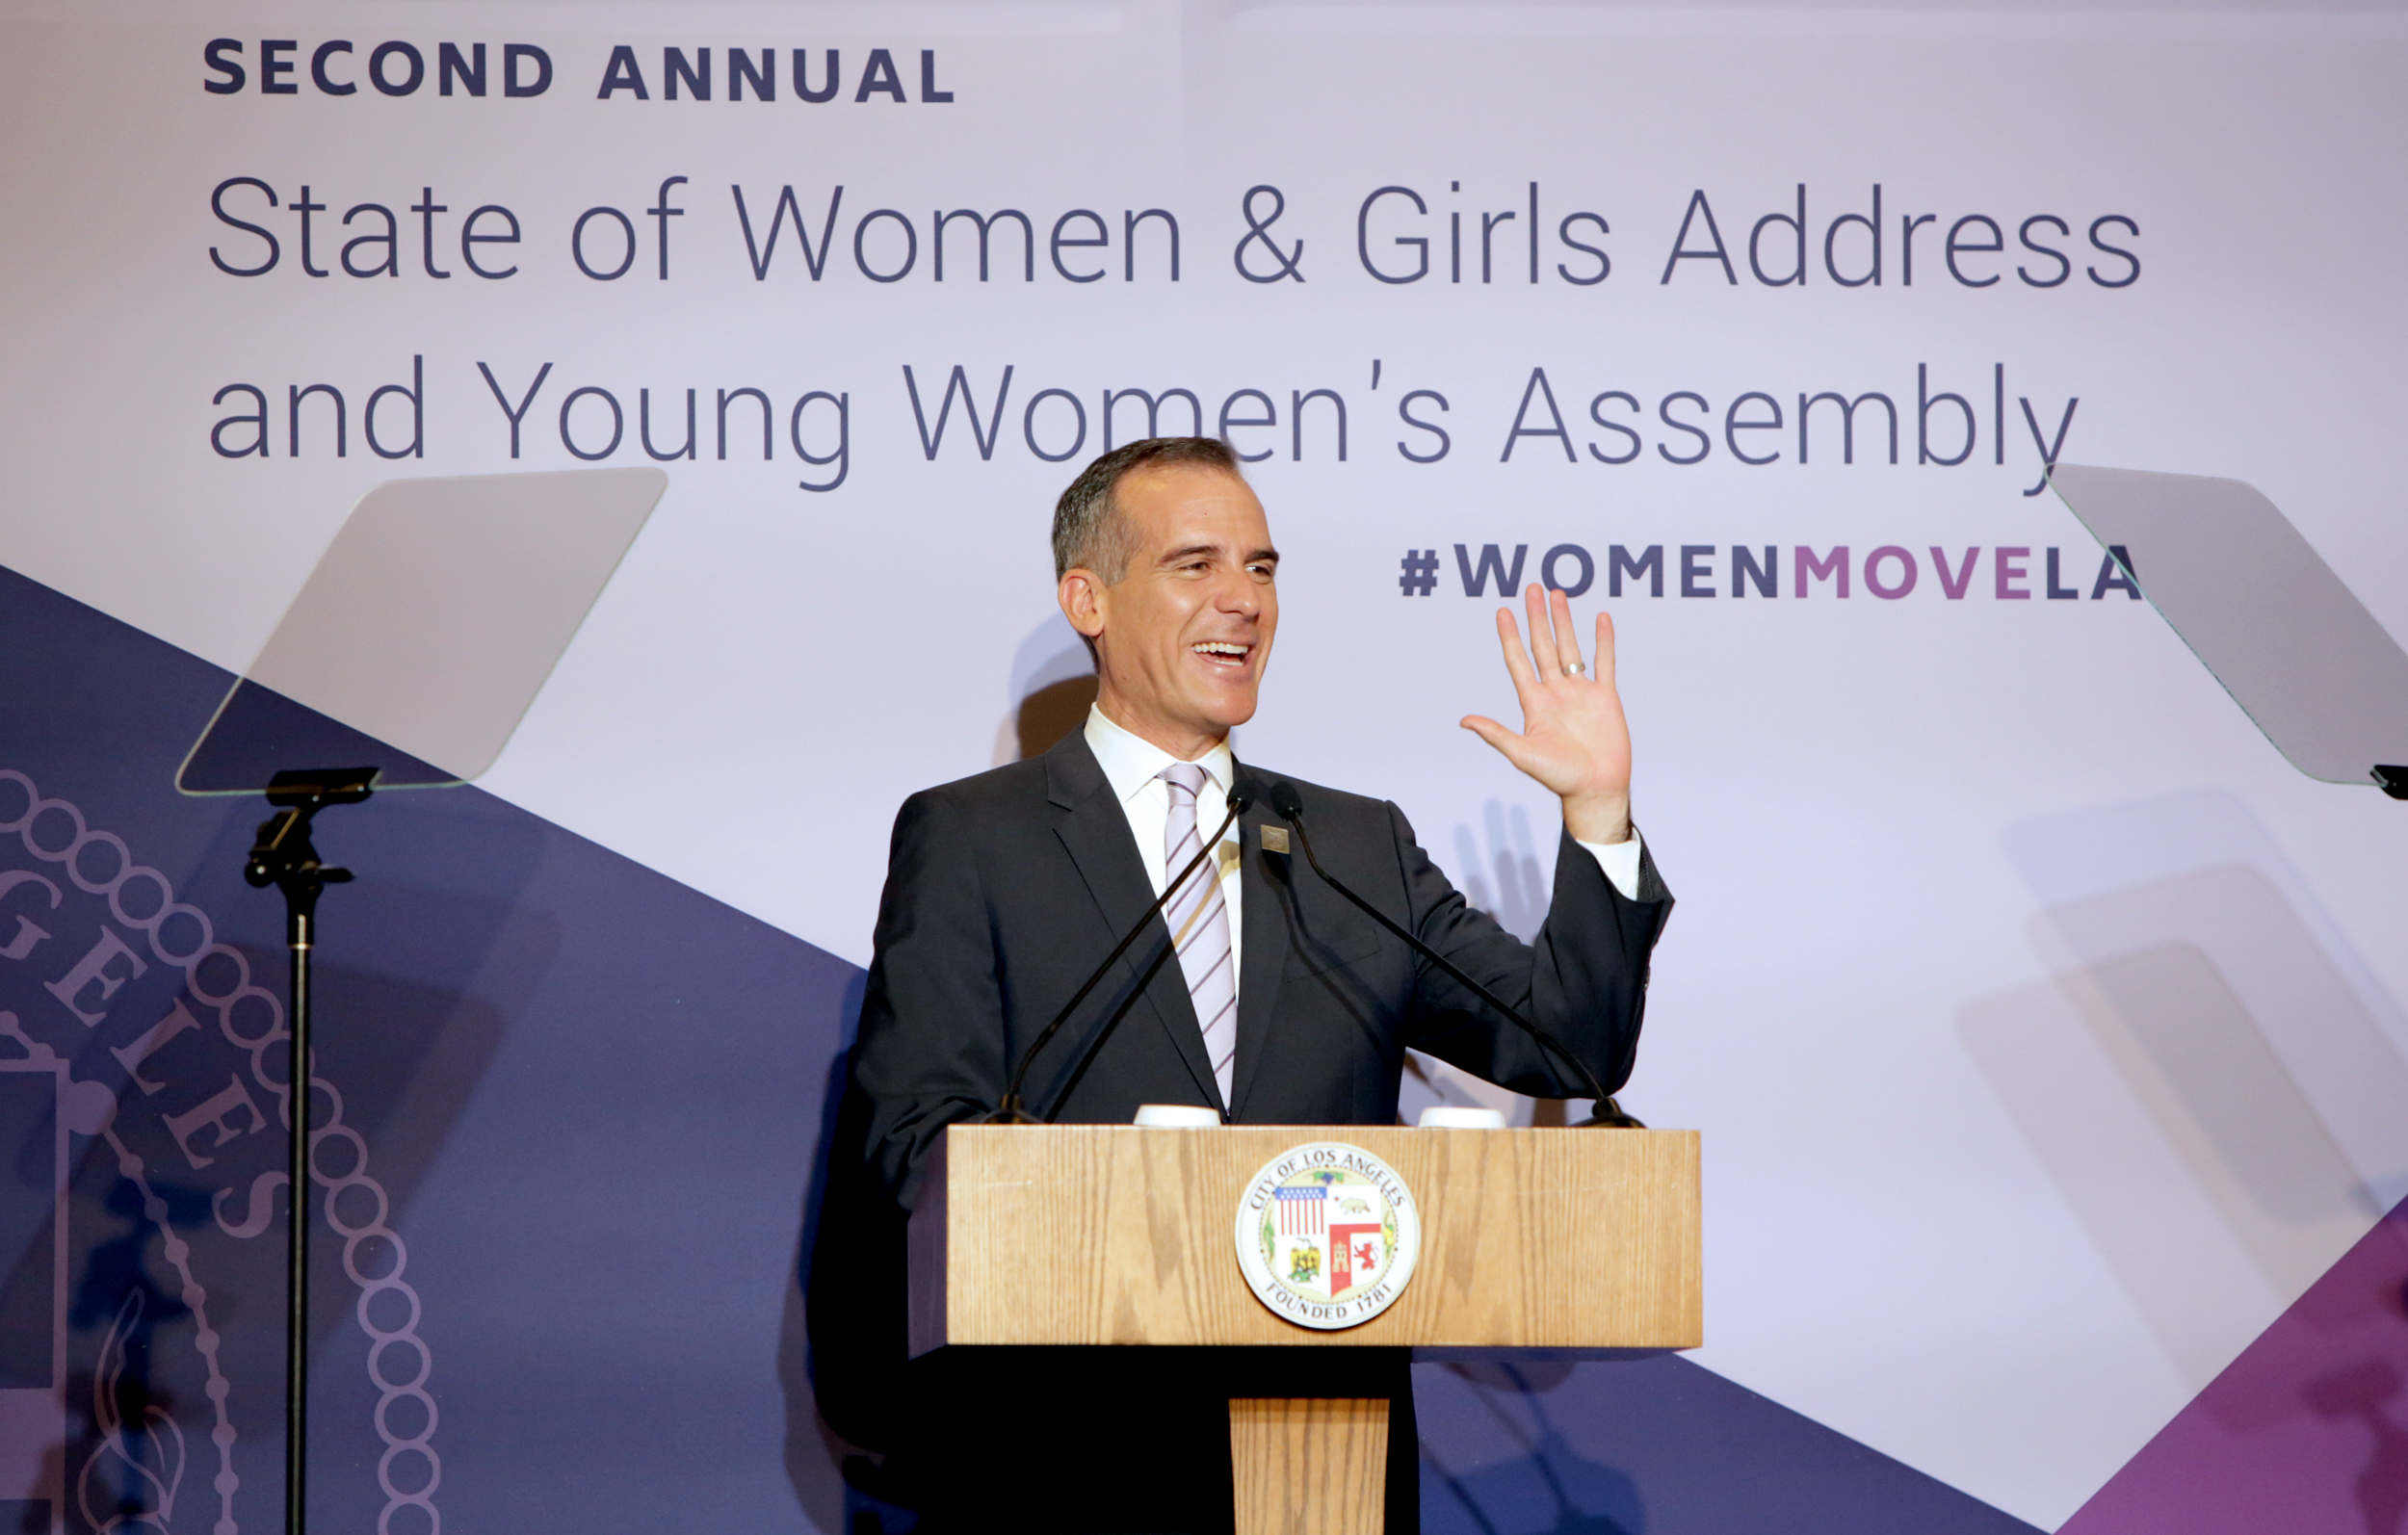 Images sourced by  Mayor Eric Garcetti's flickr account .